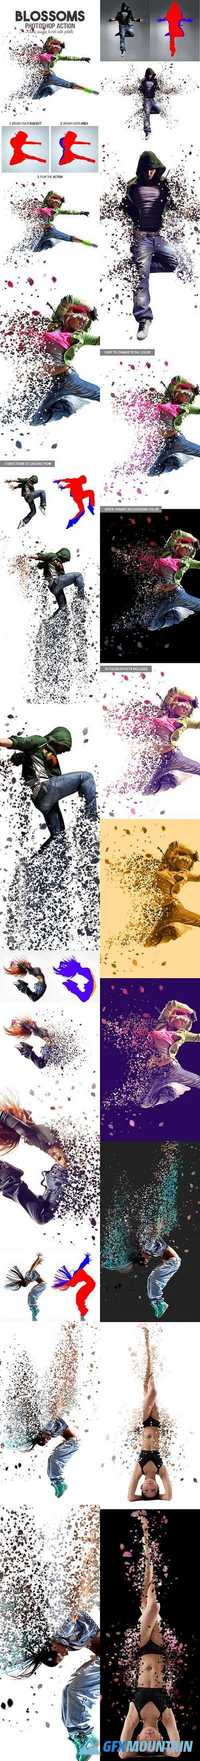 GraphicRiver - Blossoms Photoshop Action 16876177